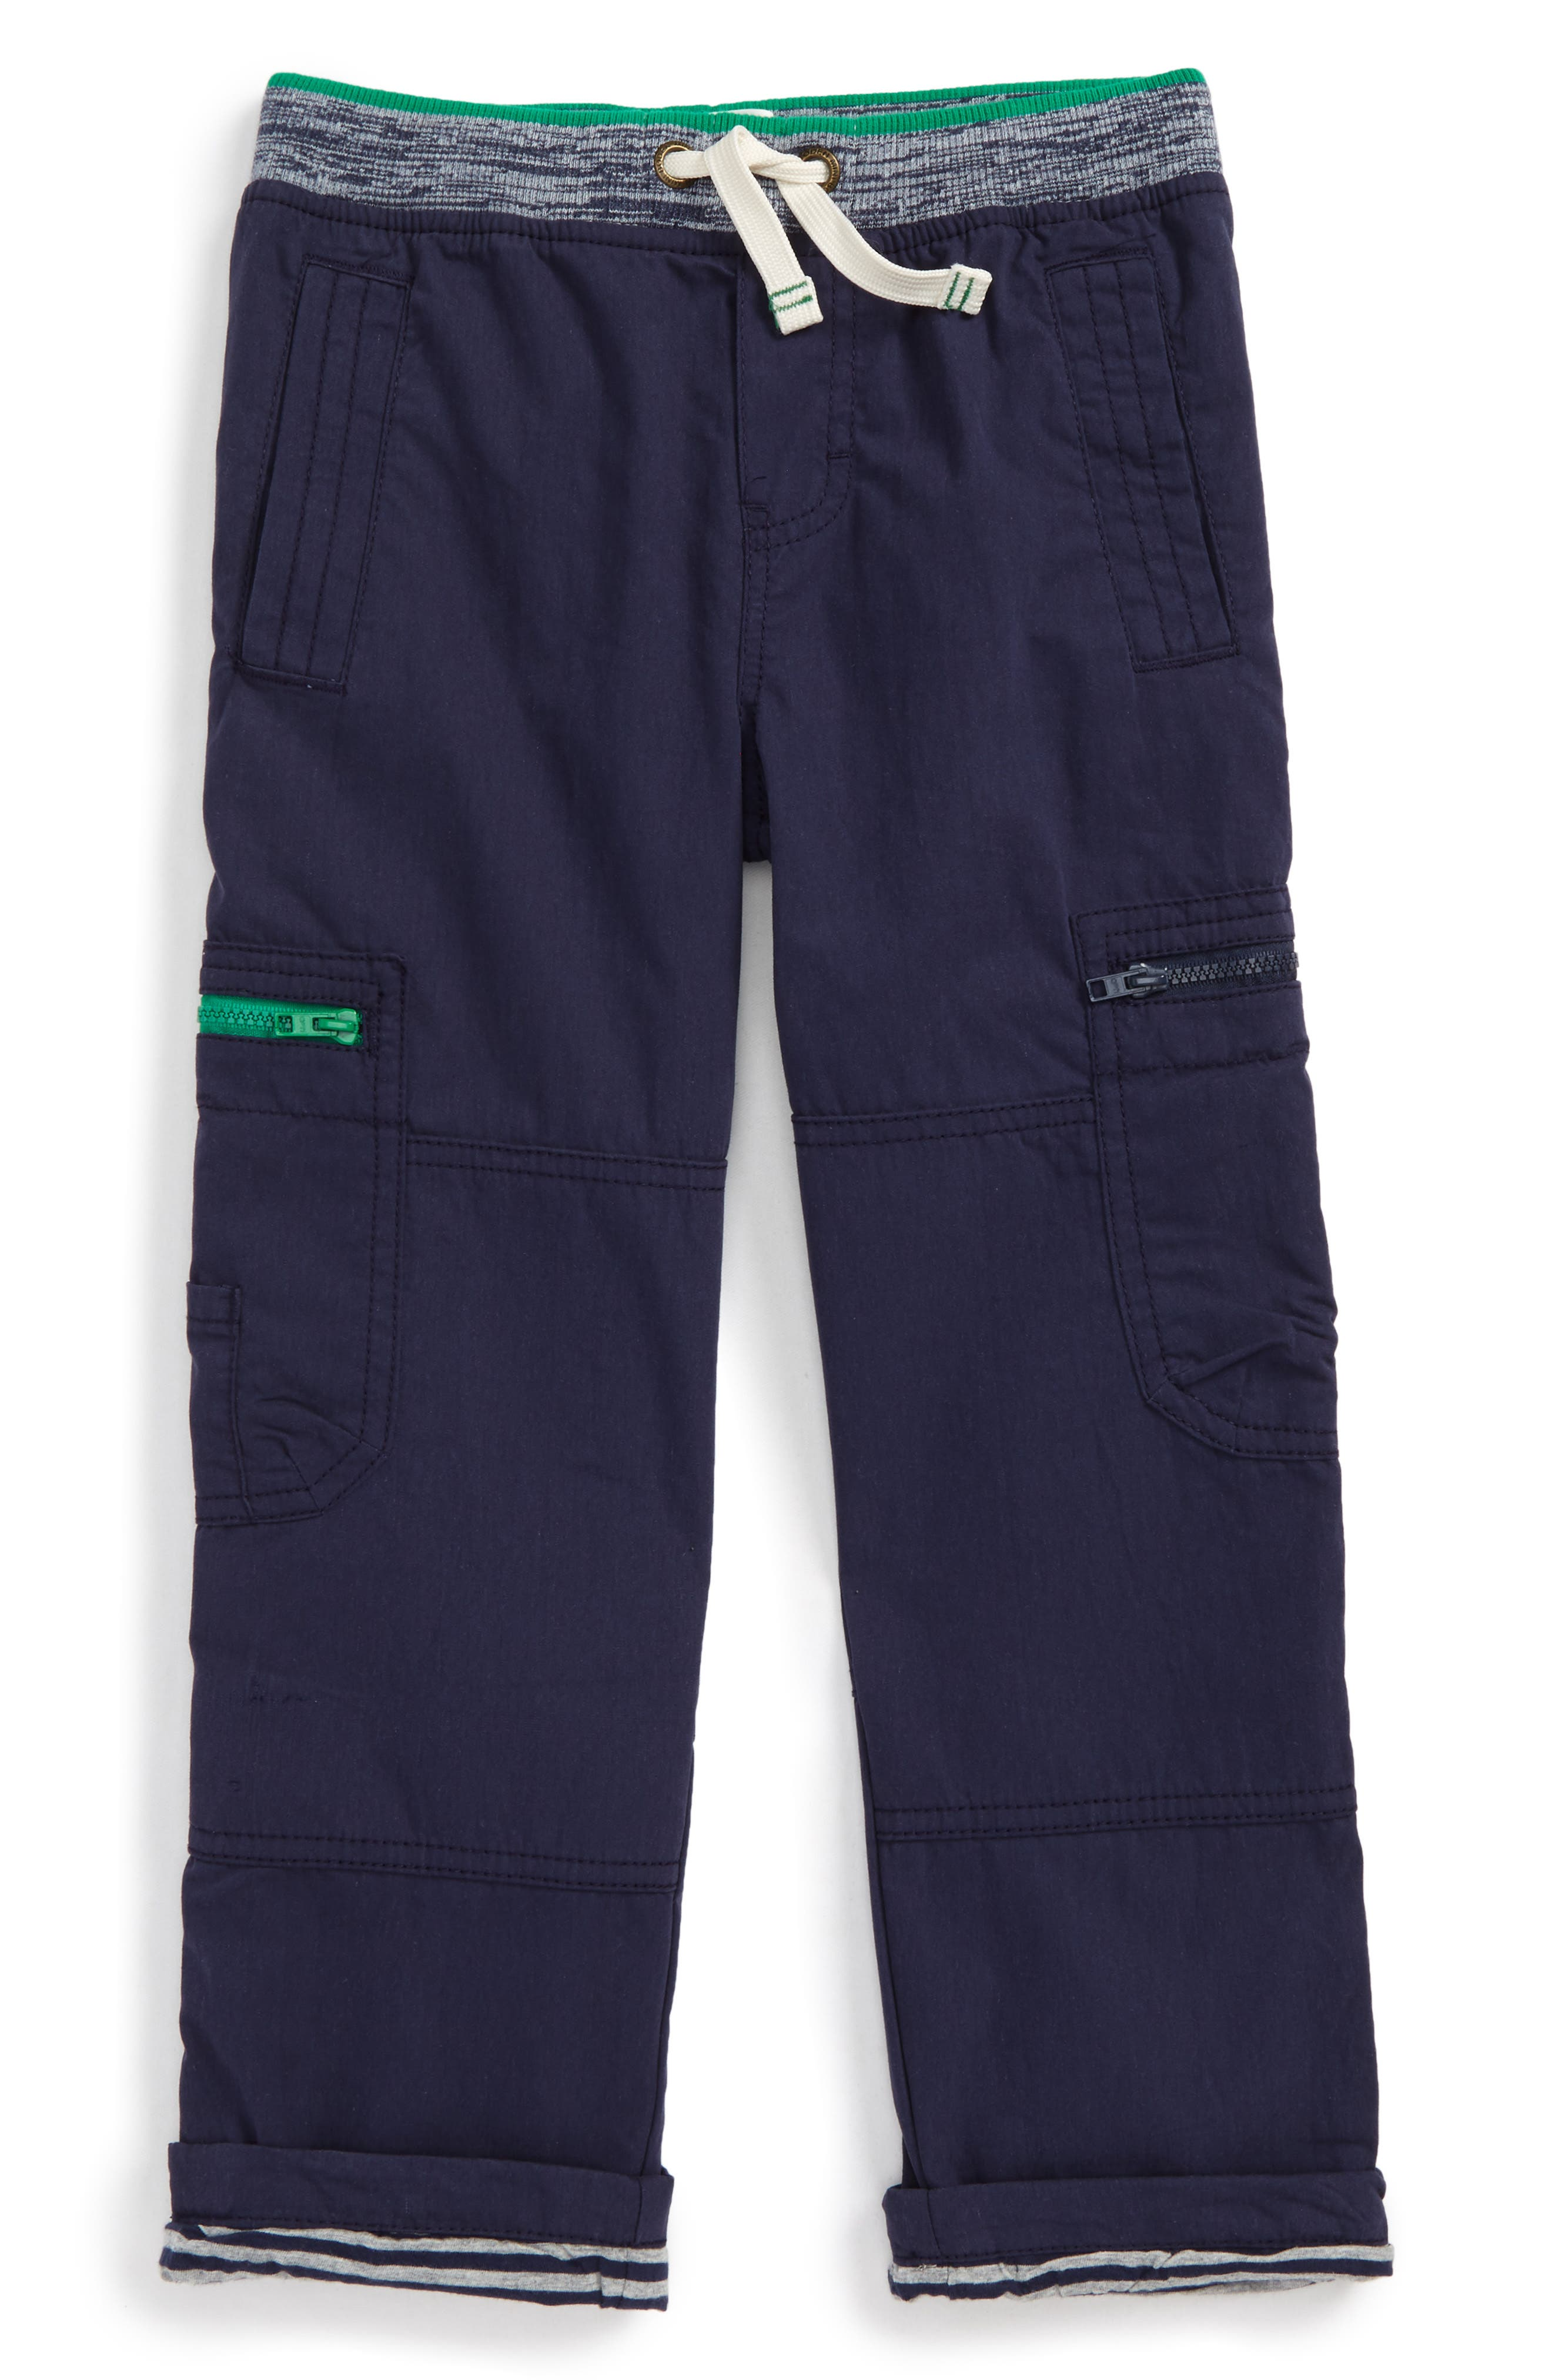 Lined Cargo Pants,                             Main thumbnail 1, color,                             Navy